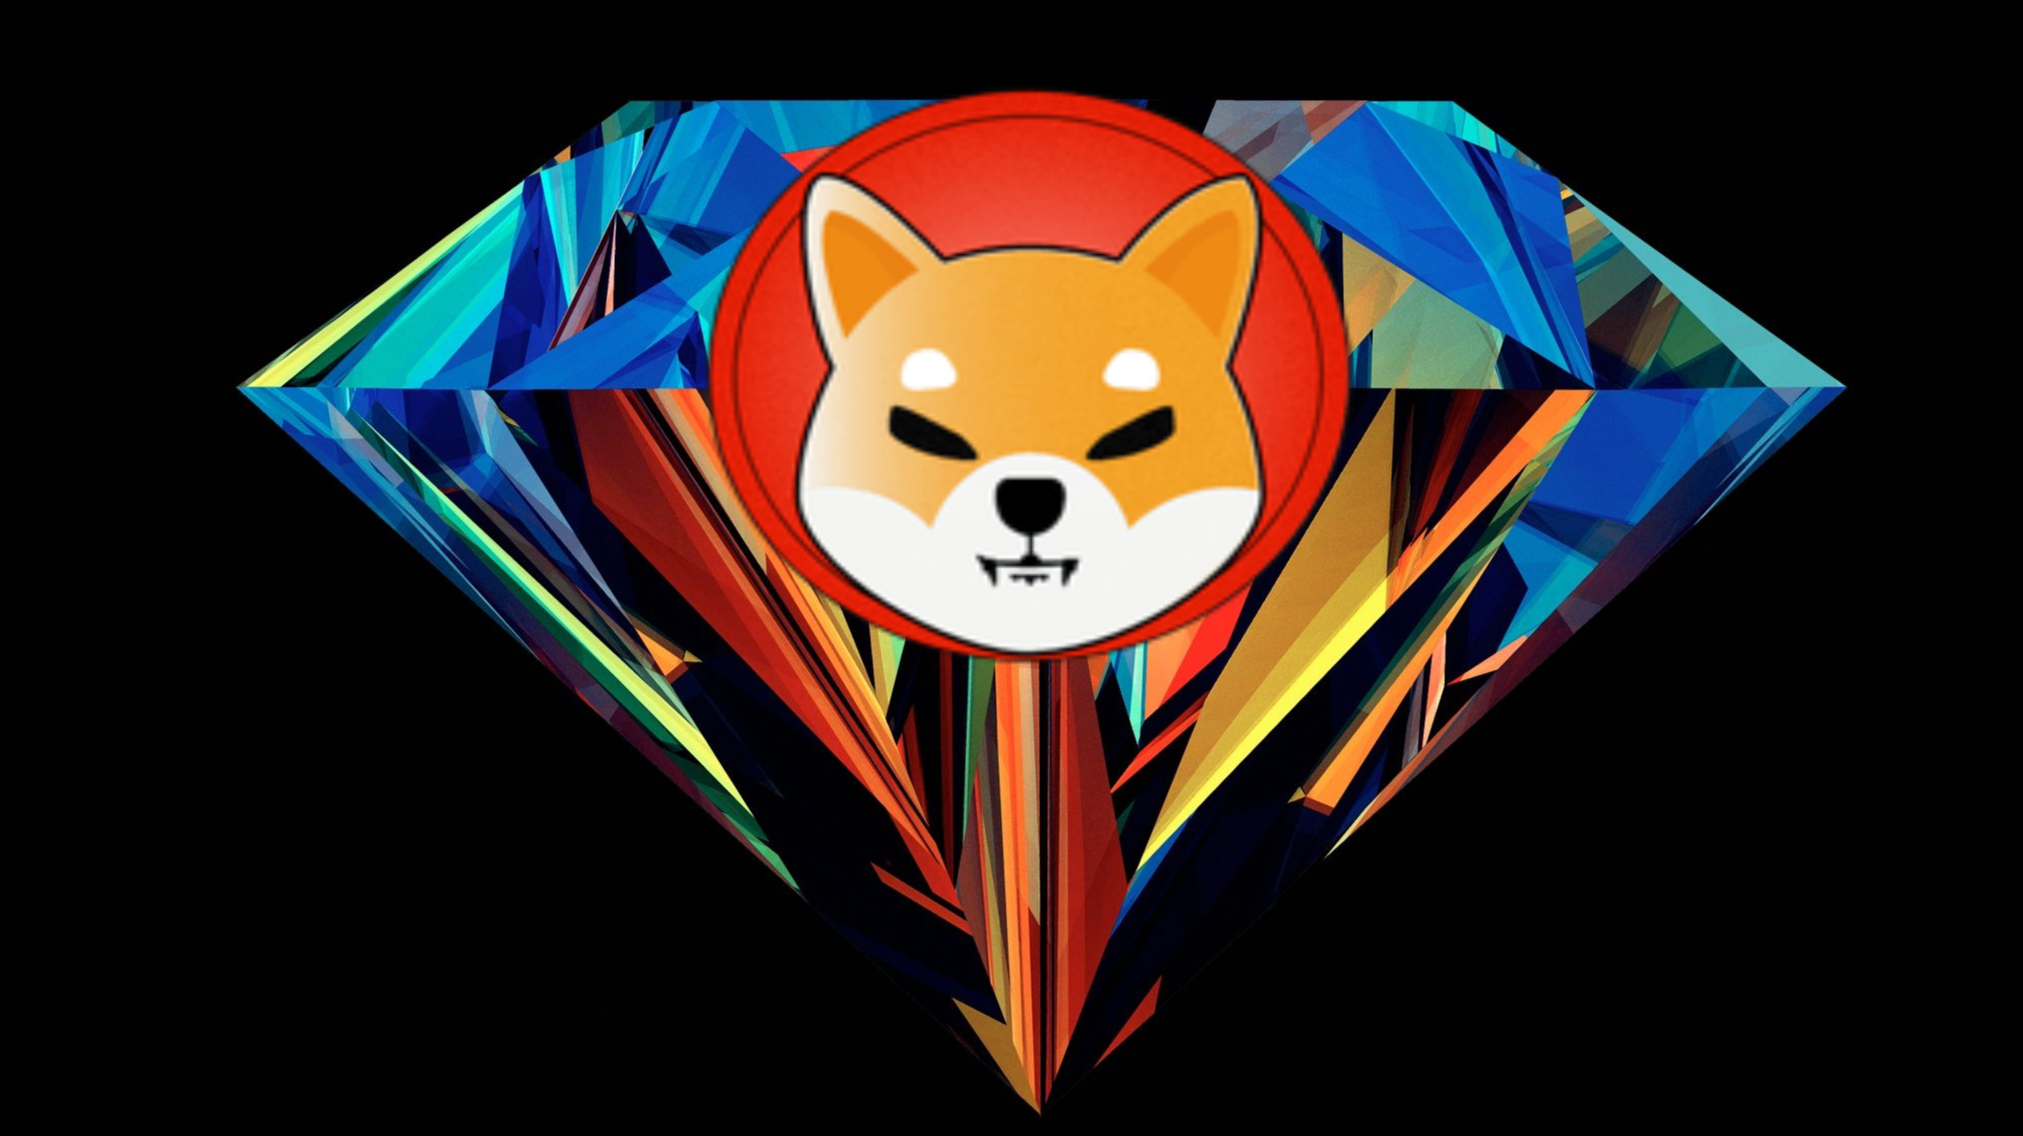 The Hidden Diamond Cryptocurrency, Shiba Inu (SHIBA). get rich in the future with a few dollars